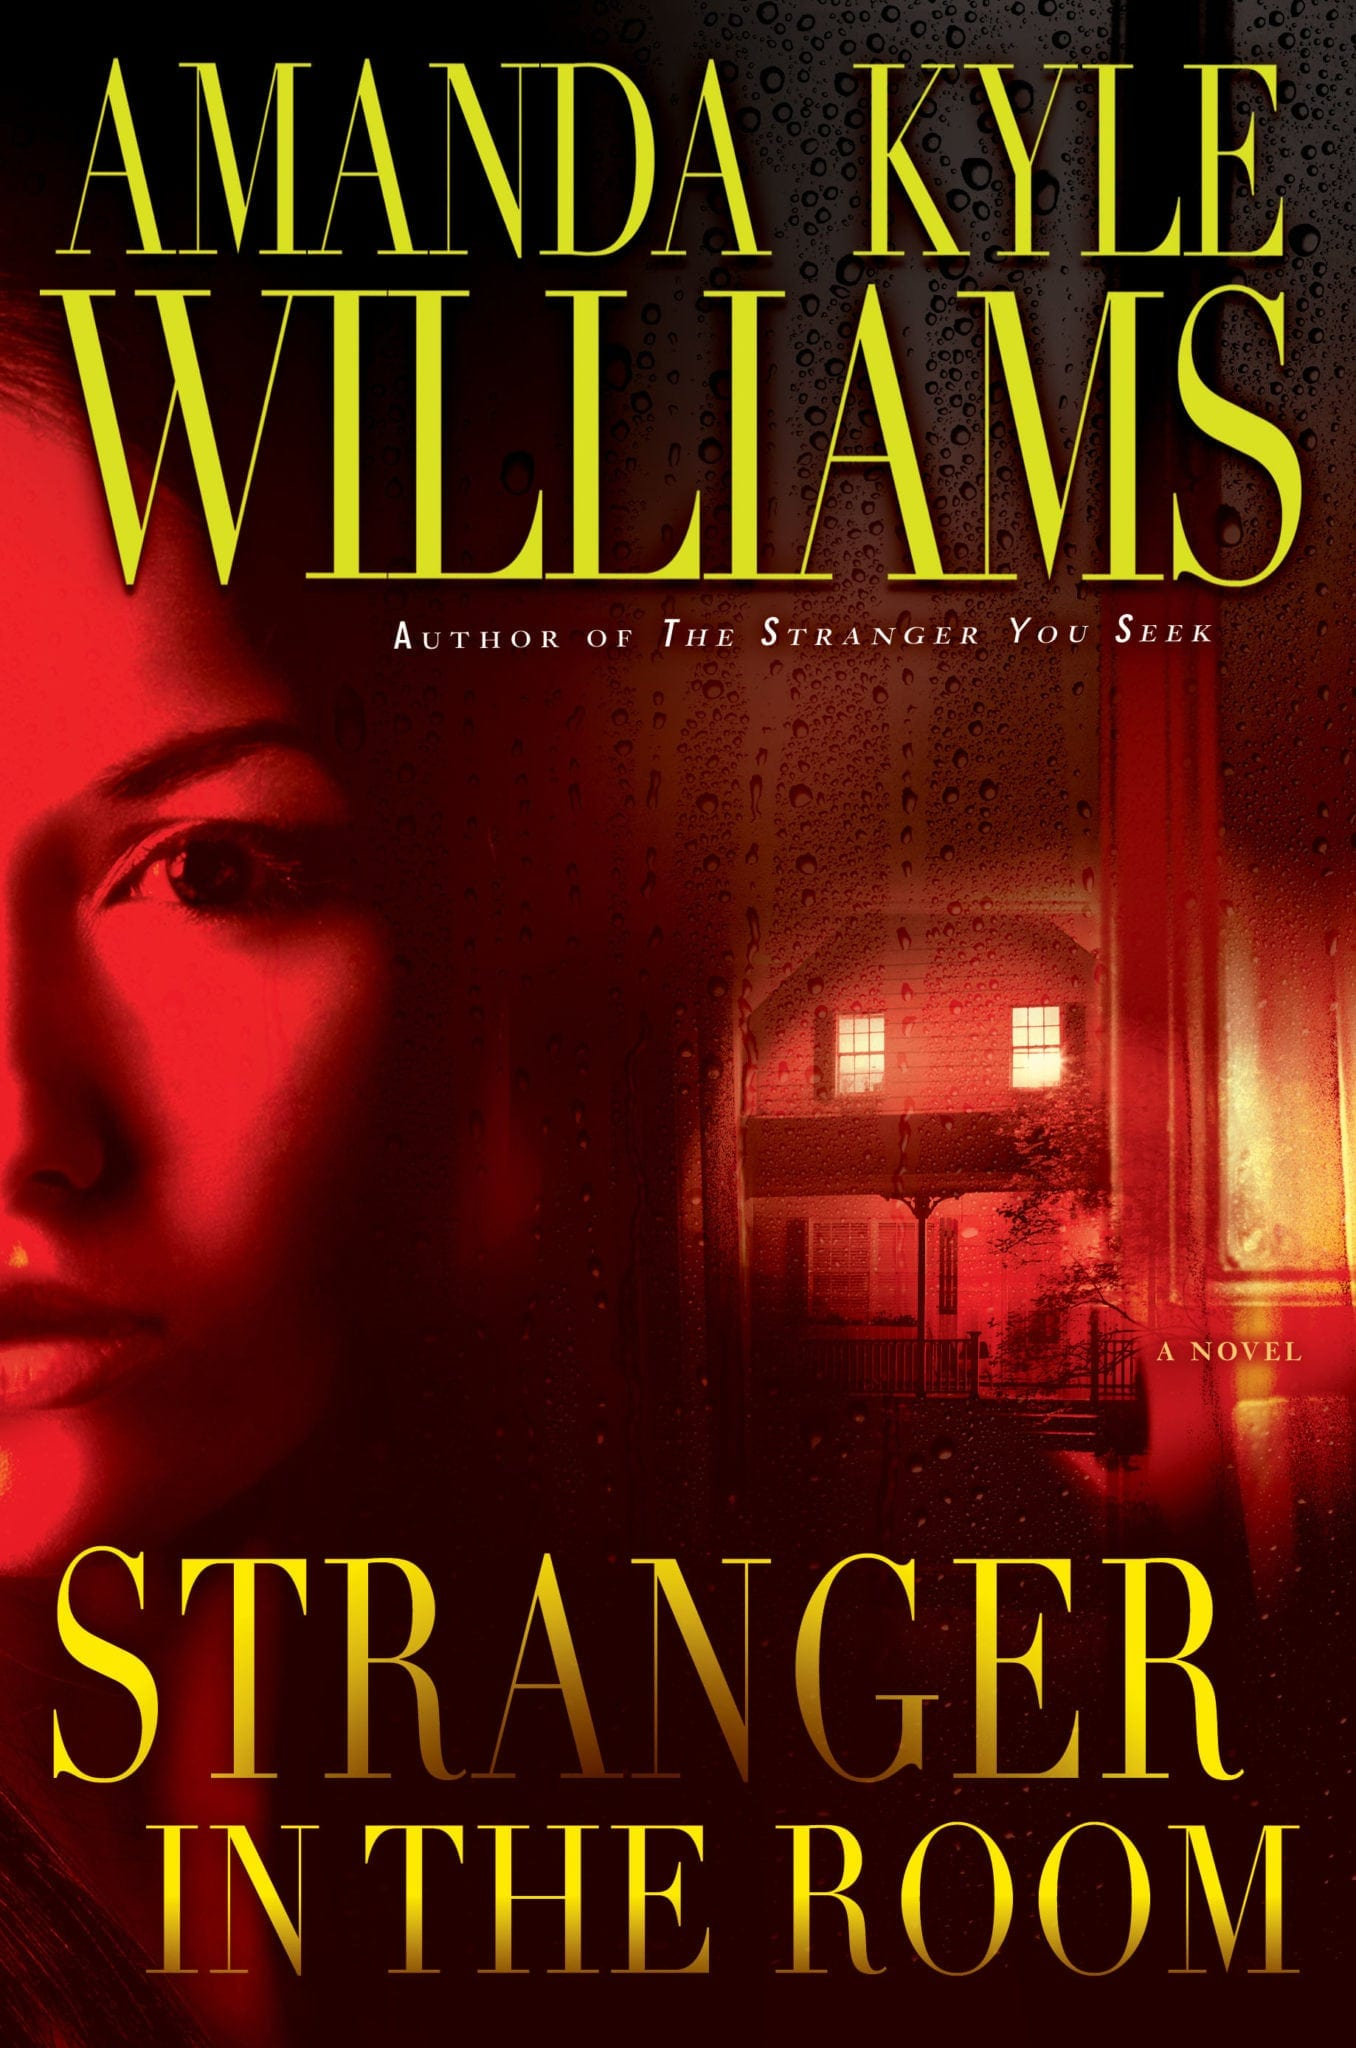 Stranger on the Room by Amanda Kyle Williams